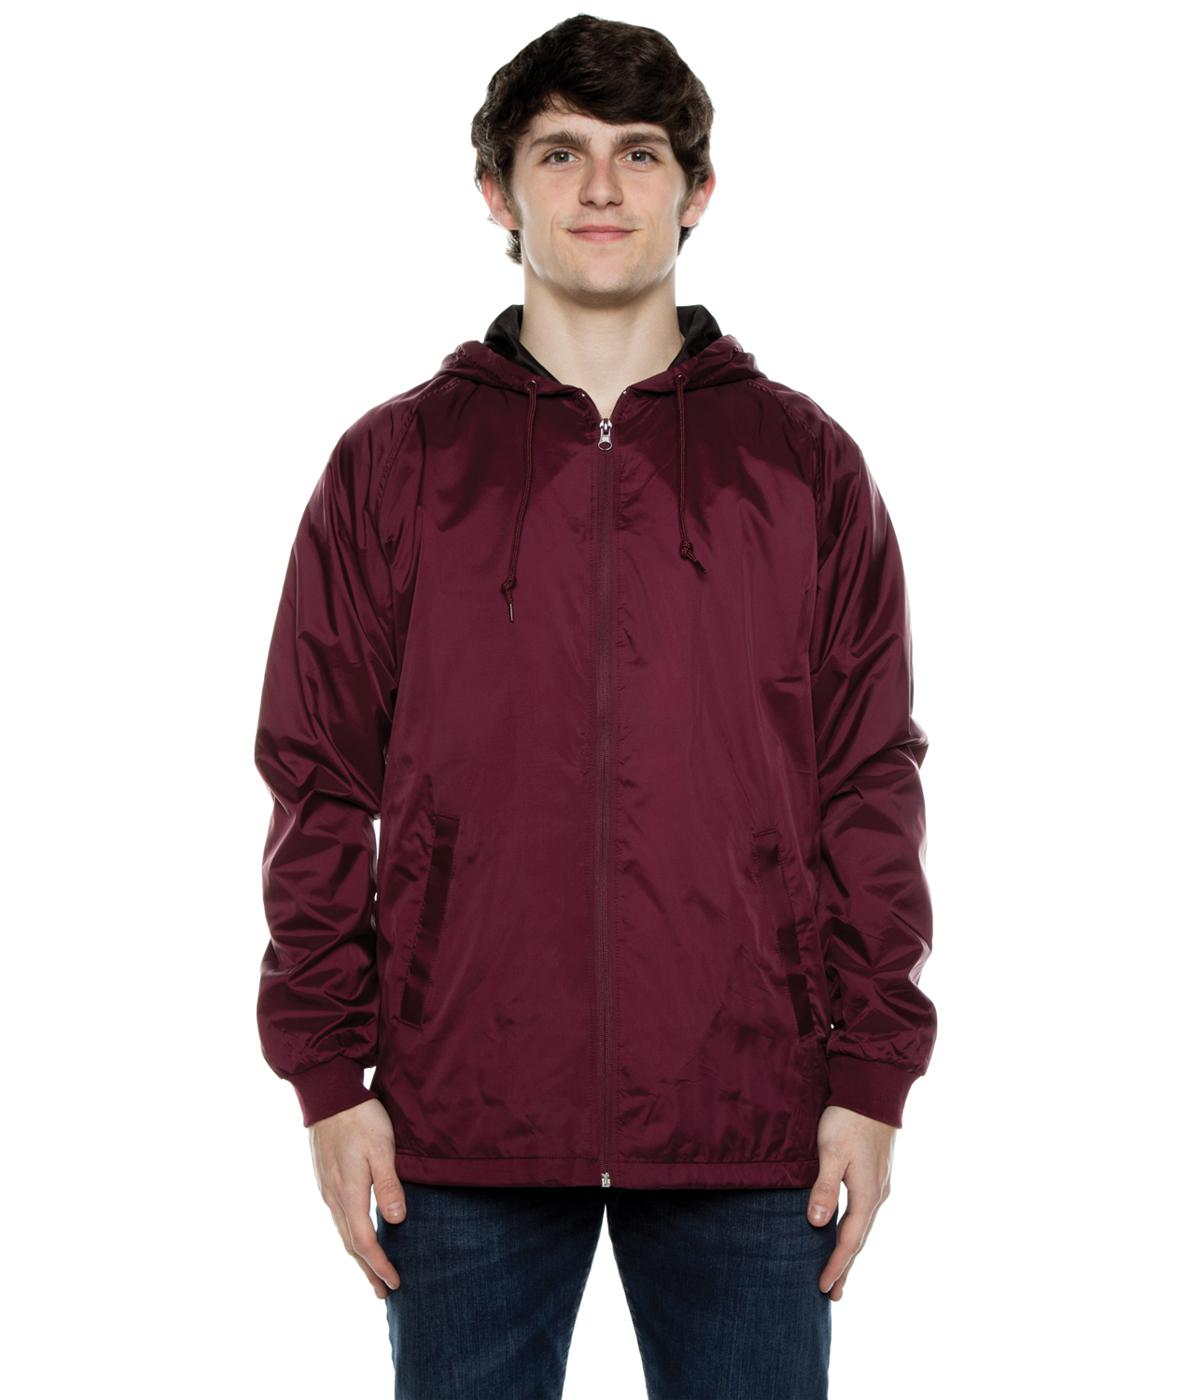 Coaches Hooded Full Zip Jacket w/Rib